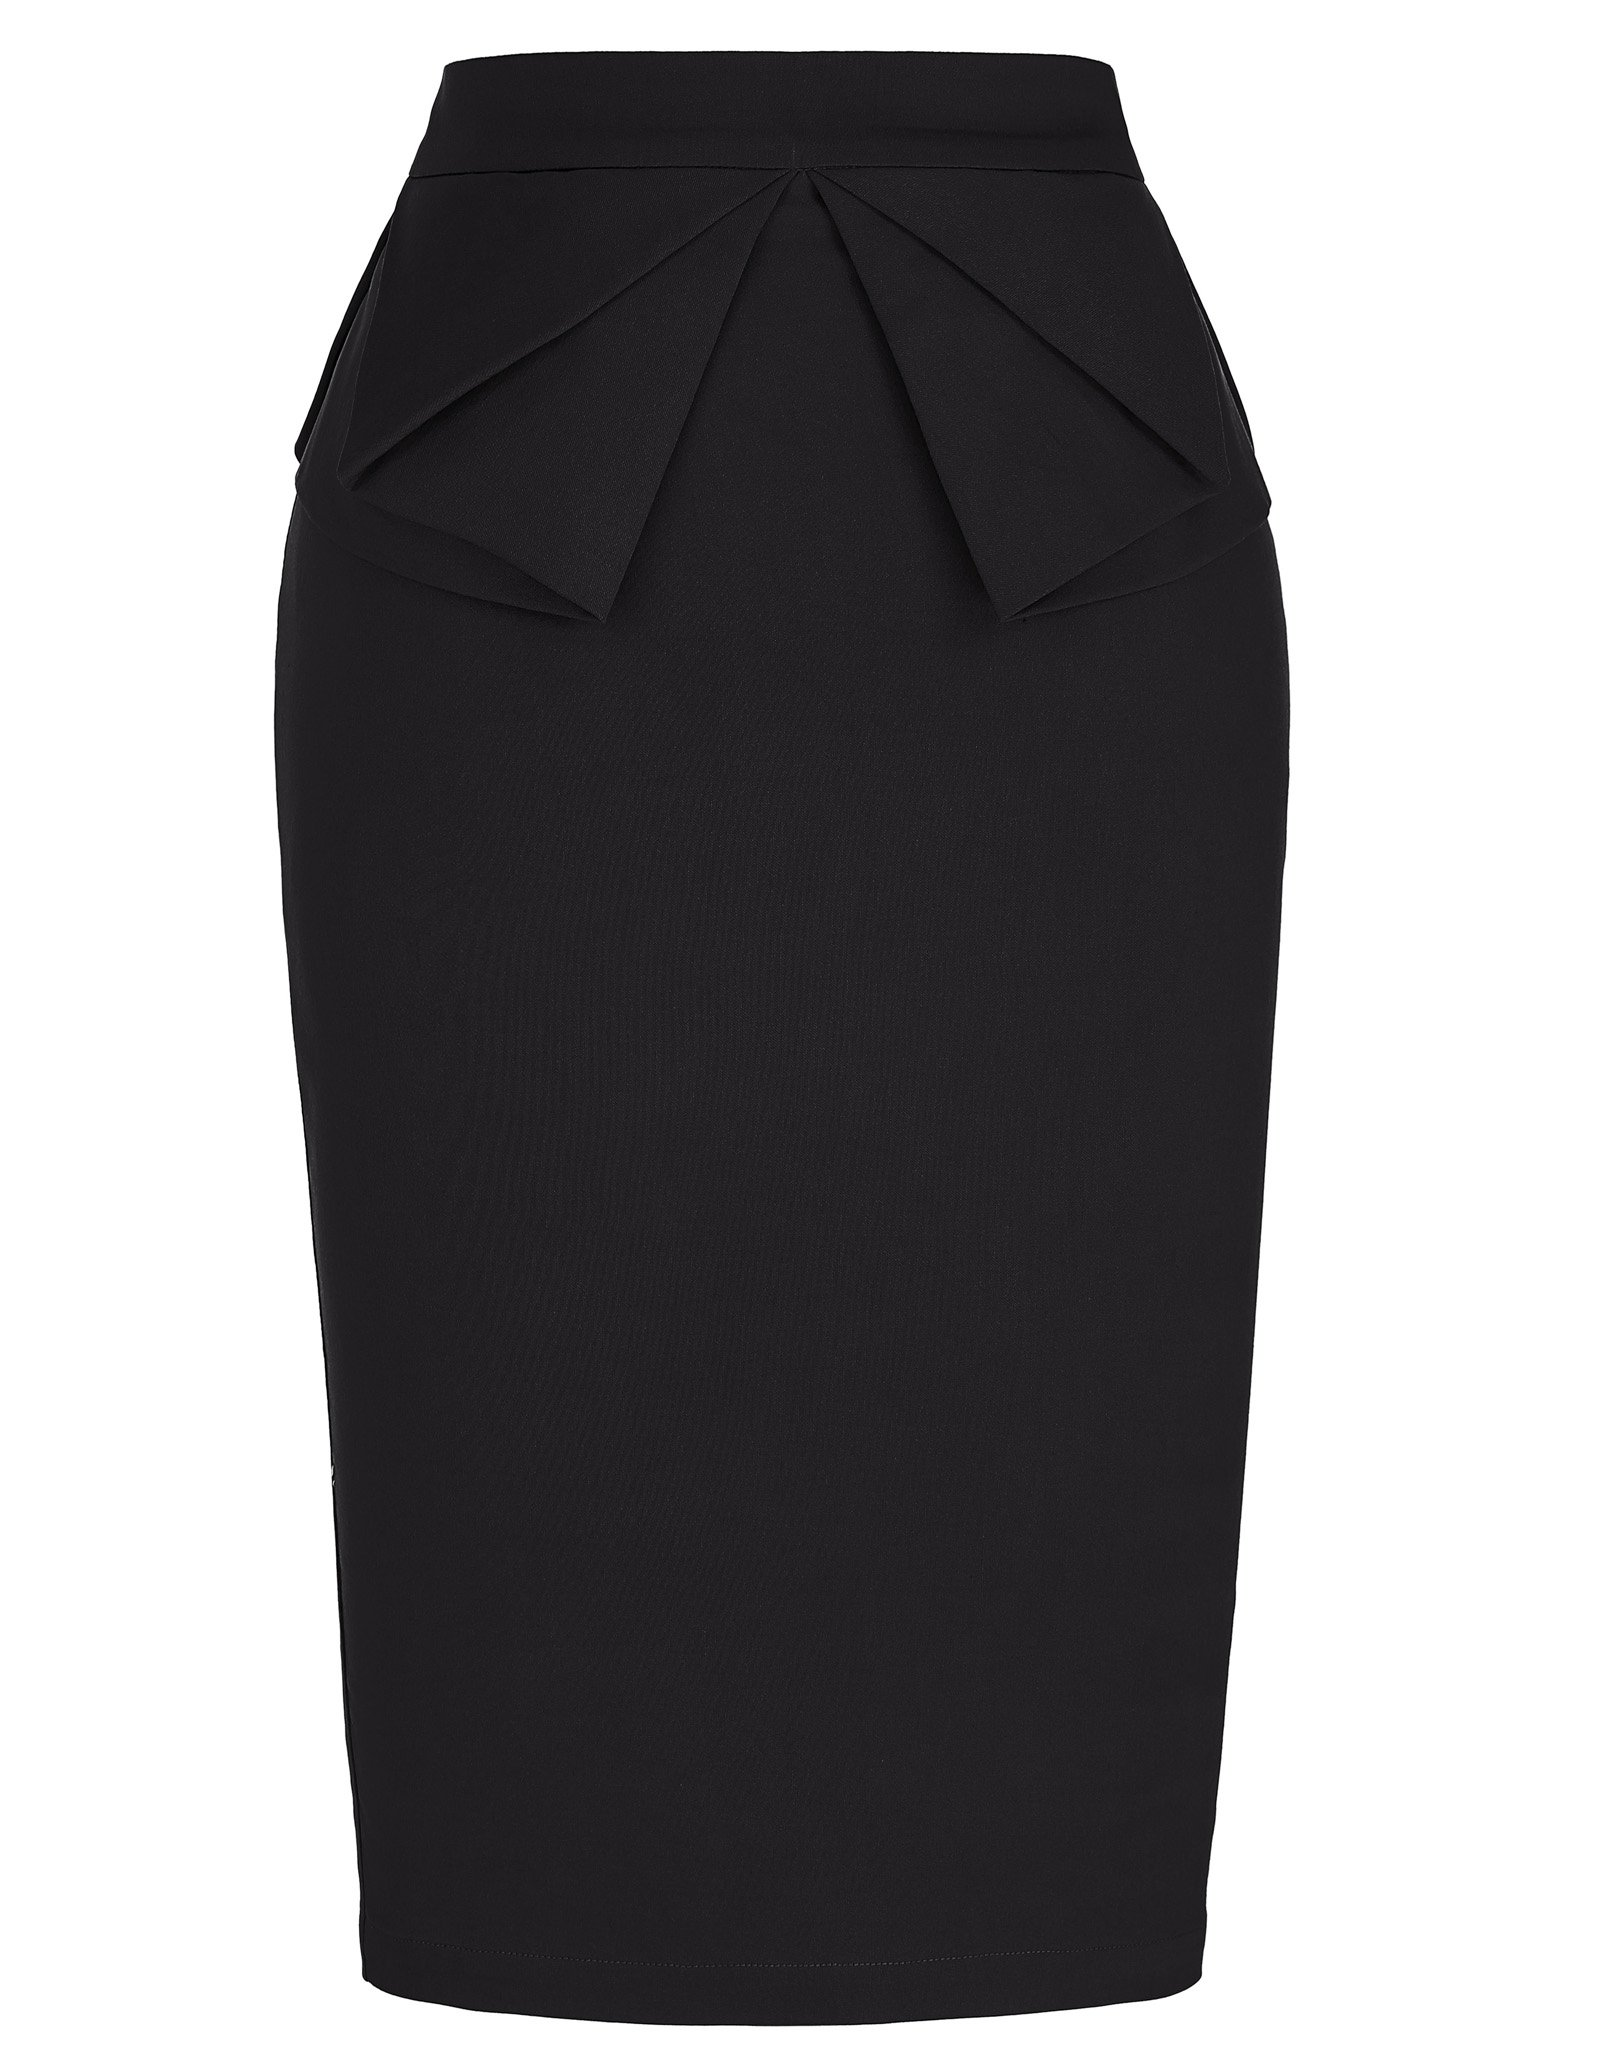 PrettyWorld Vintage Dress Solid Slim Stretchy Pencil Skirt for Women Knee Length Black (M) KL-1 CL454